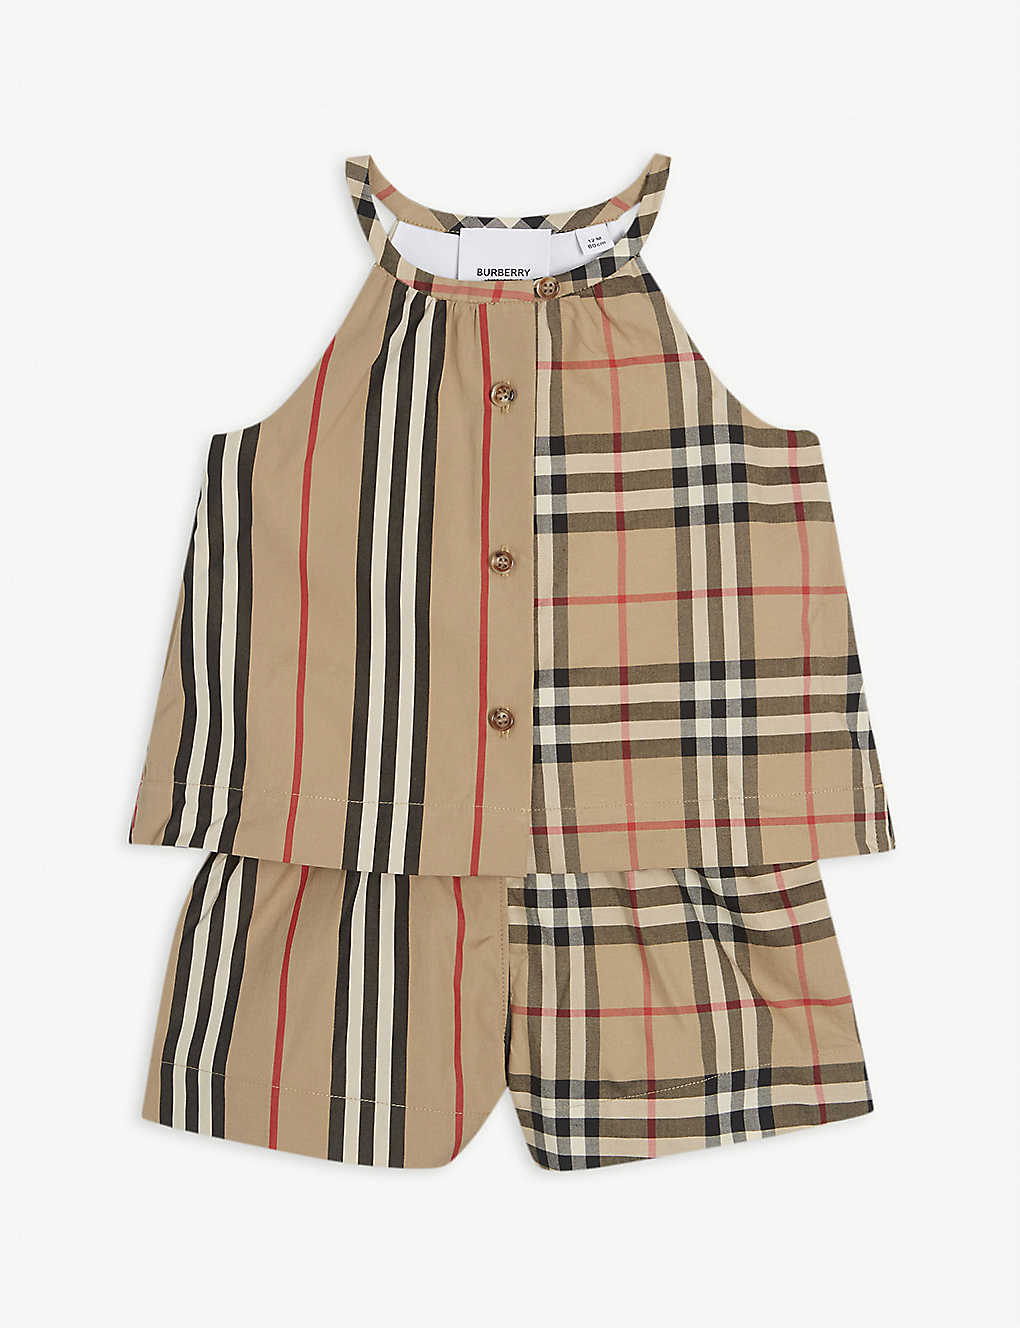 BURBERRY: Check-print cotton playsuit 6-24 months